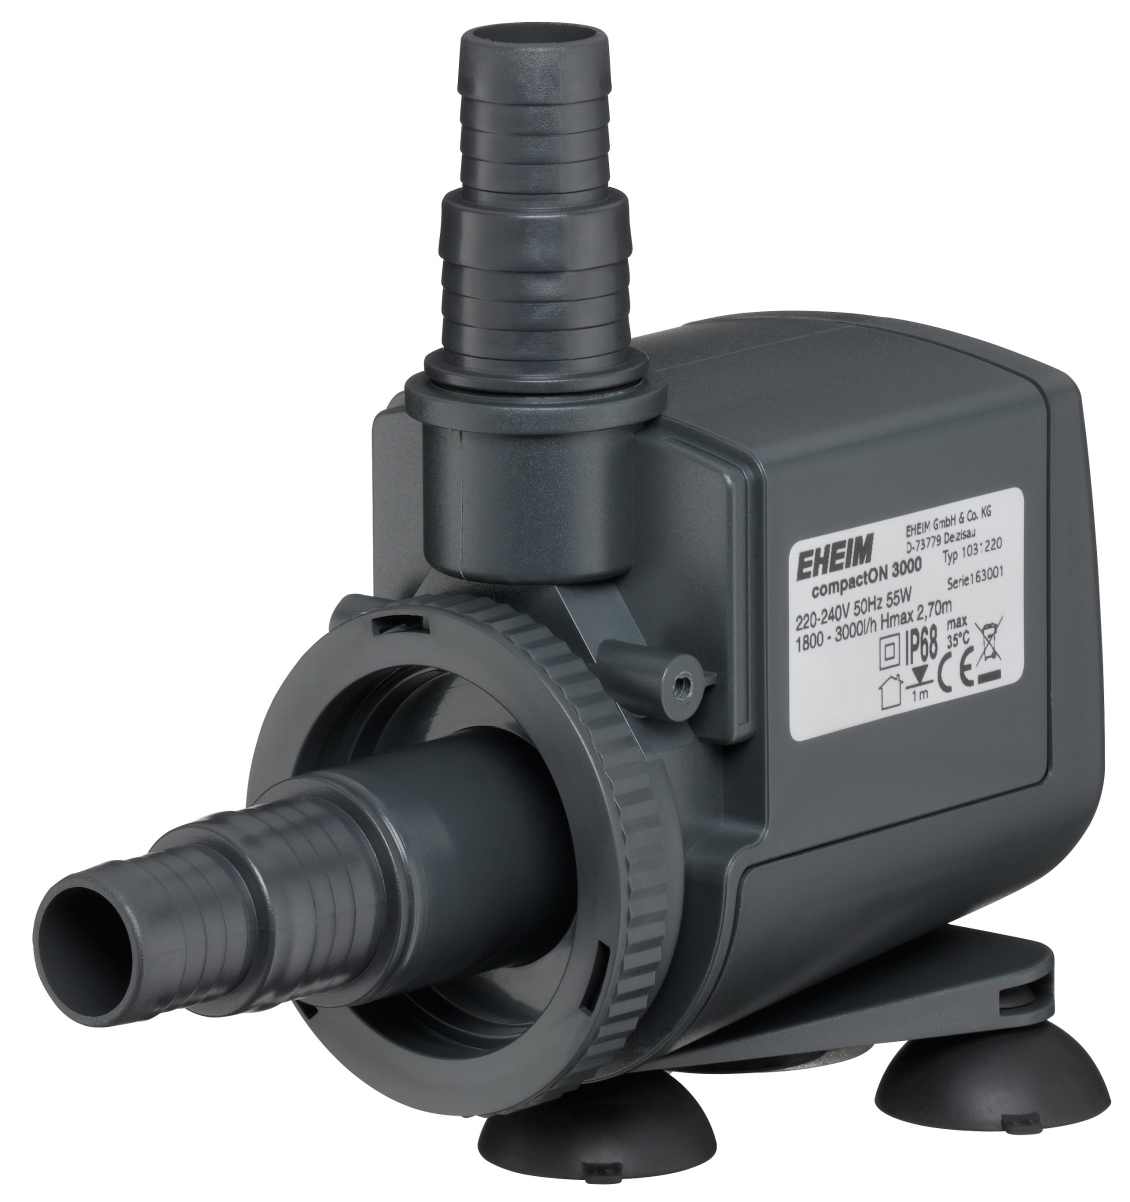 Shop EHEIM compactON 5000 Aquarium Pump